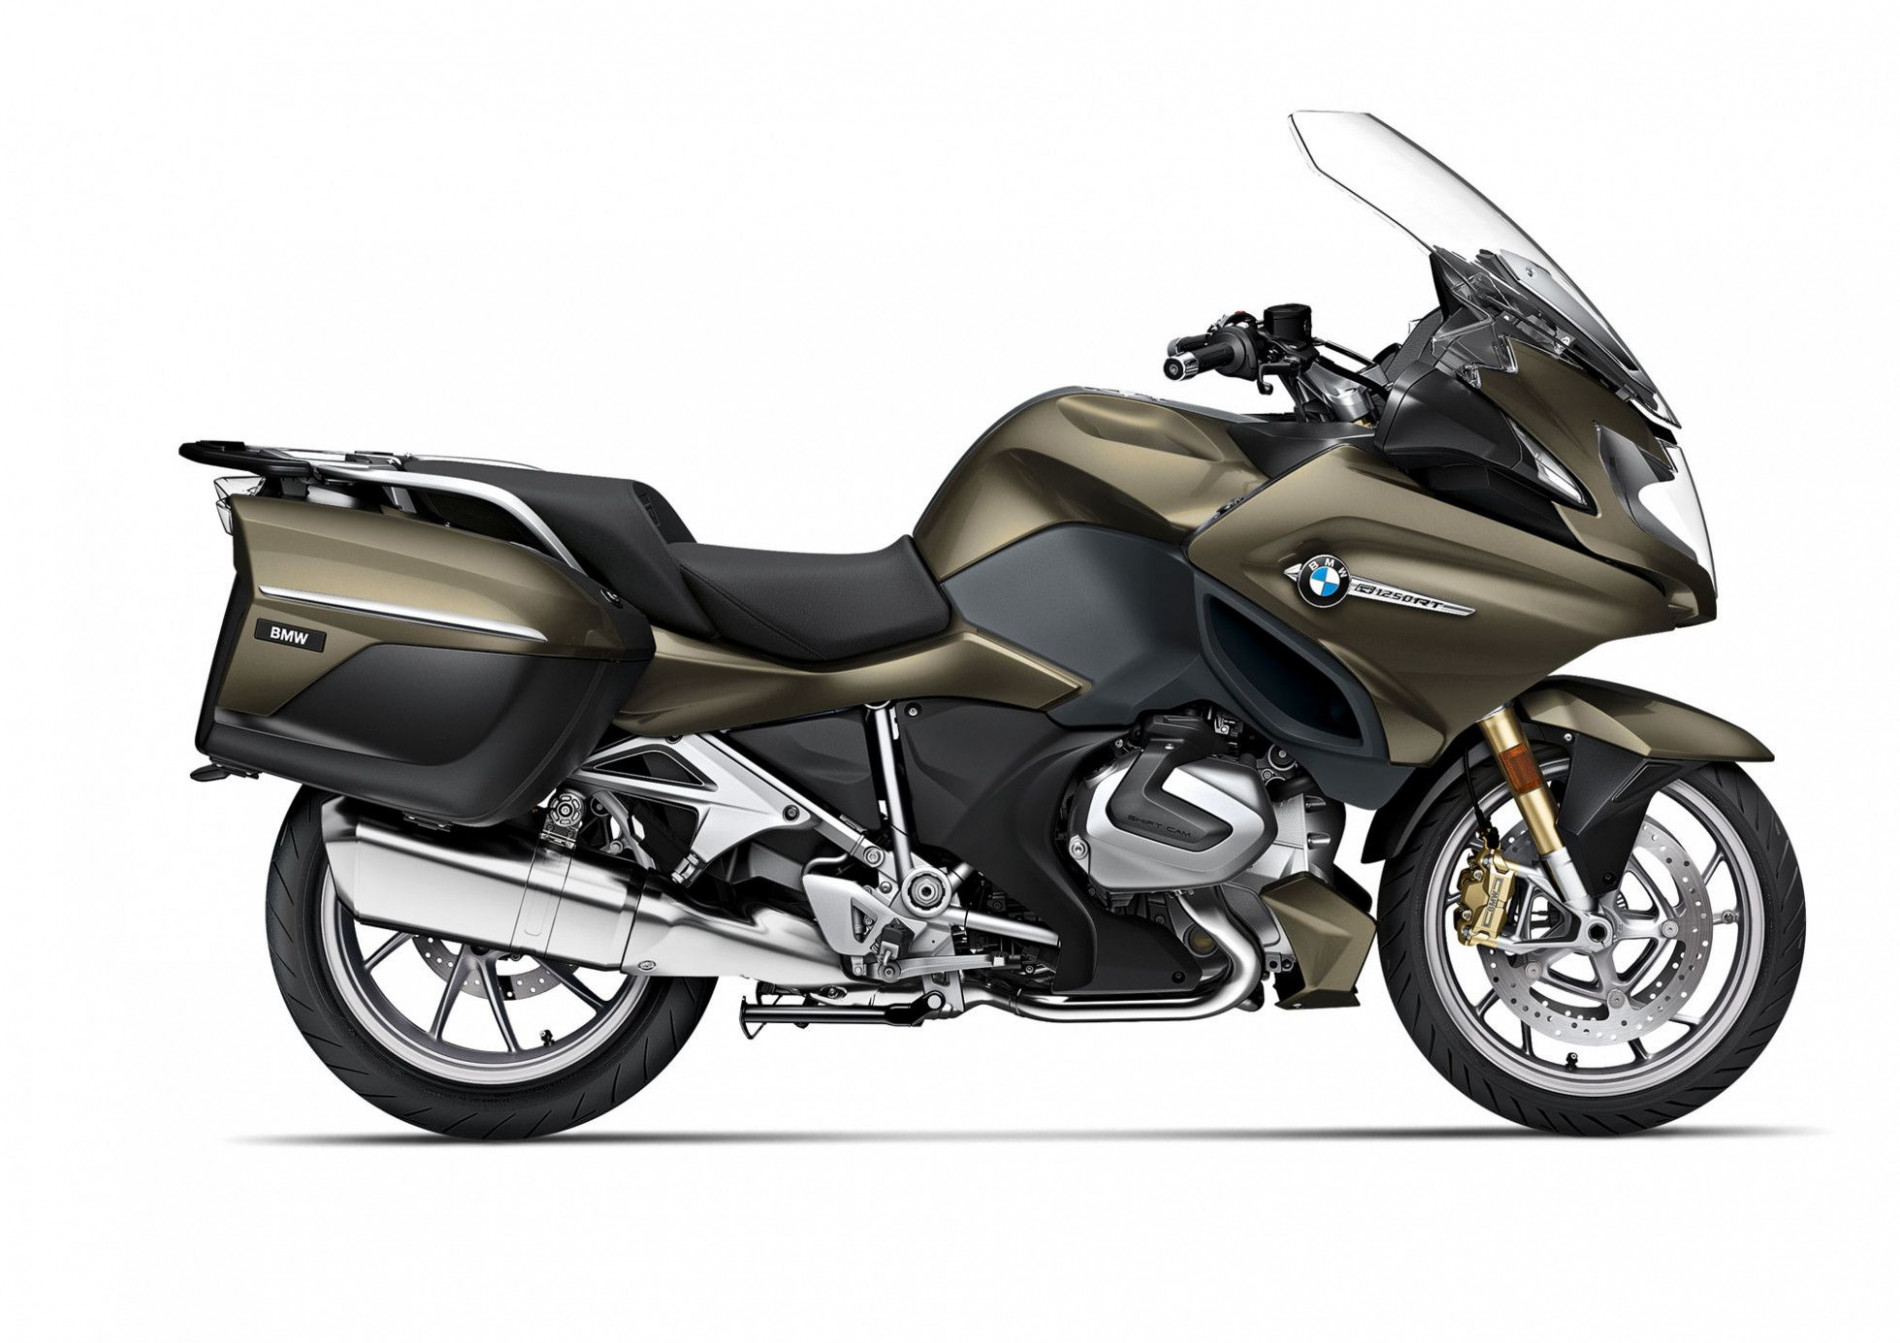 Bmw R6rt 6 Price, Design And Review (With images) | Bmw, New ..